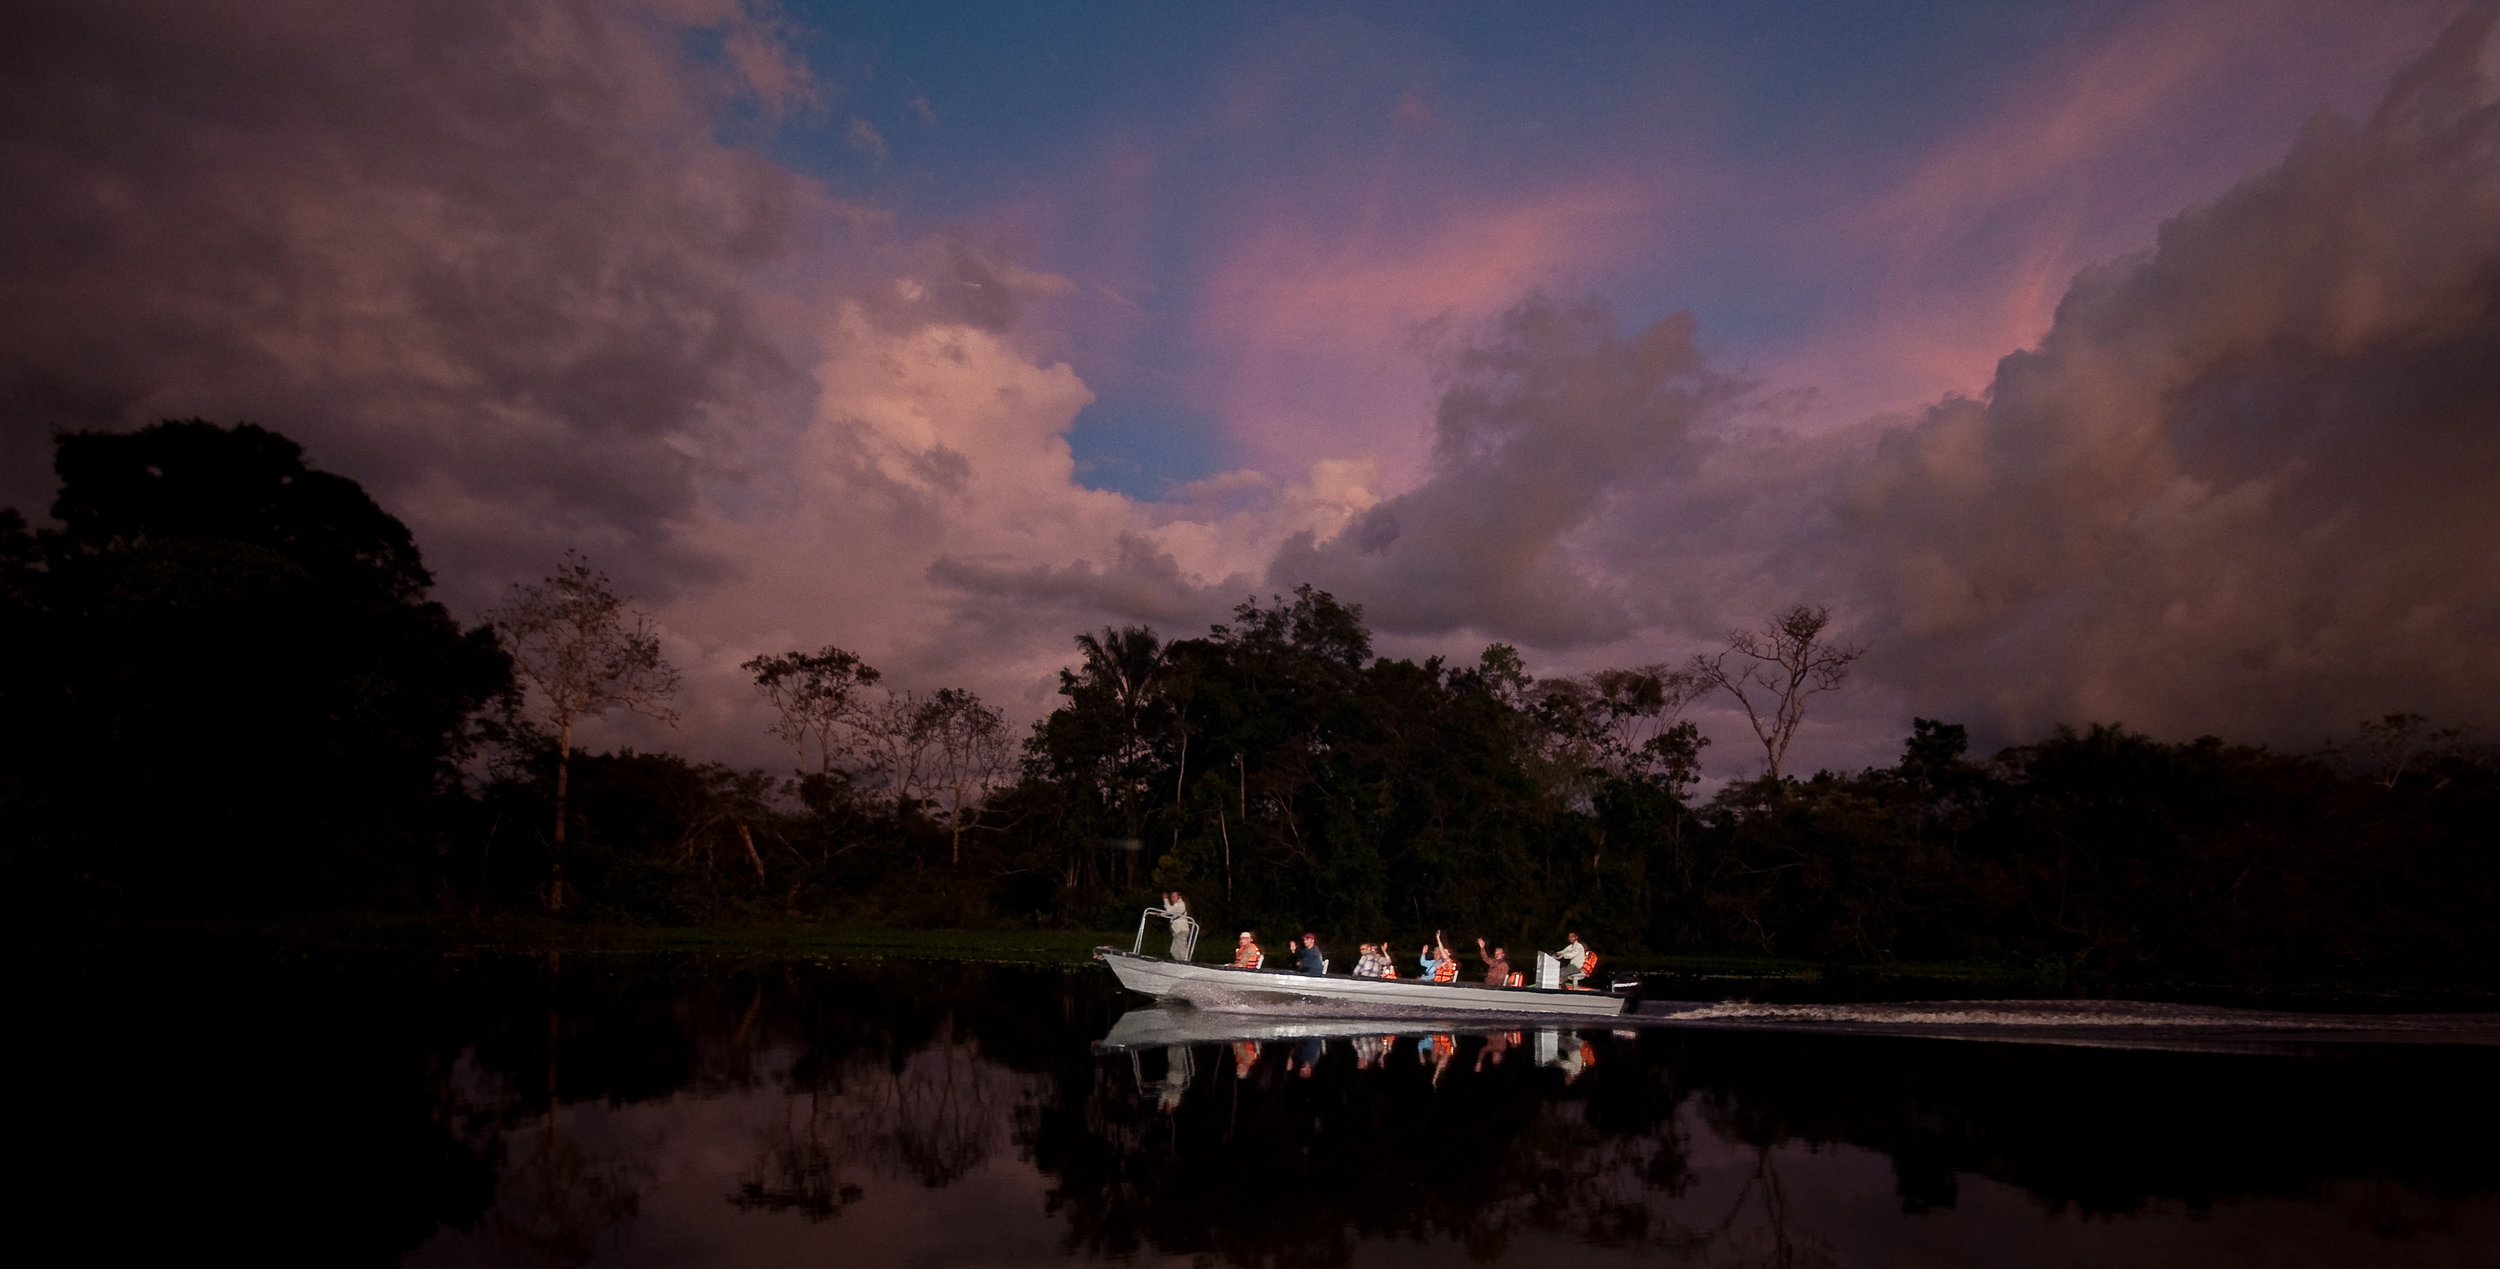 Nighttime Excursions with Delfin Amazon Cruises